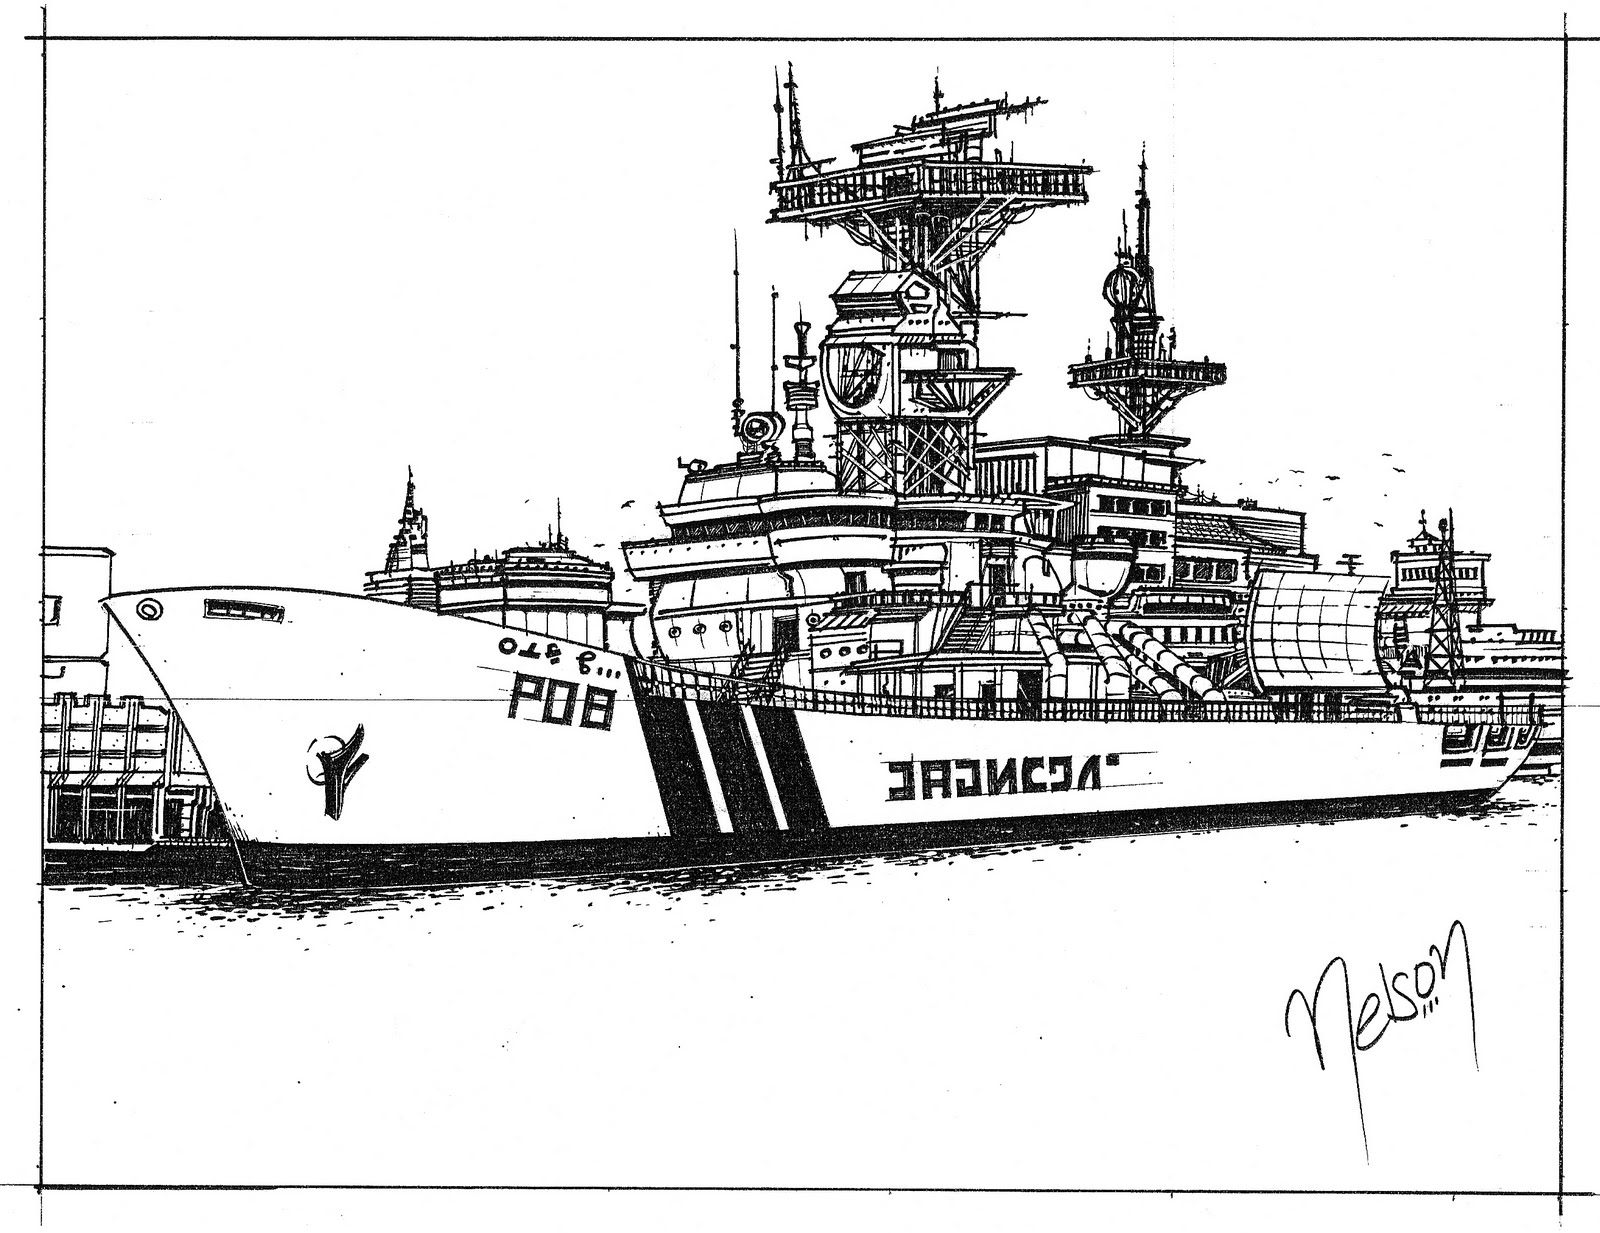 army ship coloring pages navy warships sumbarine and aircraft coloring page free army ship pages coloring